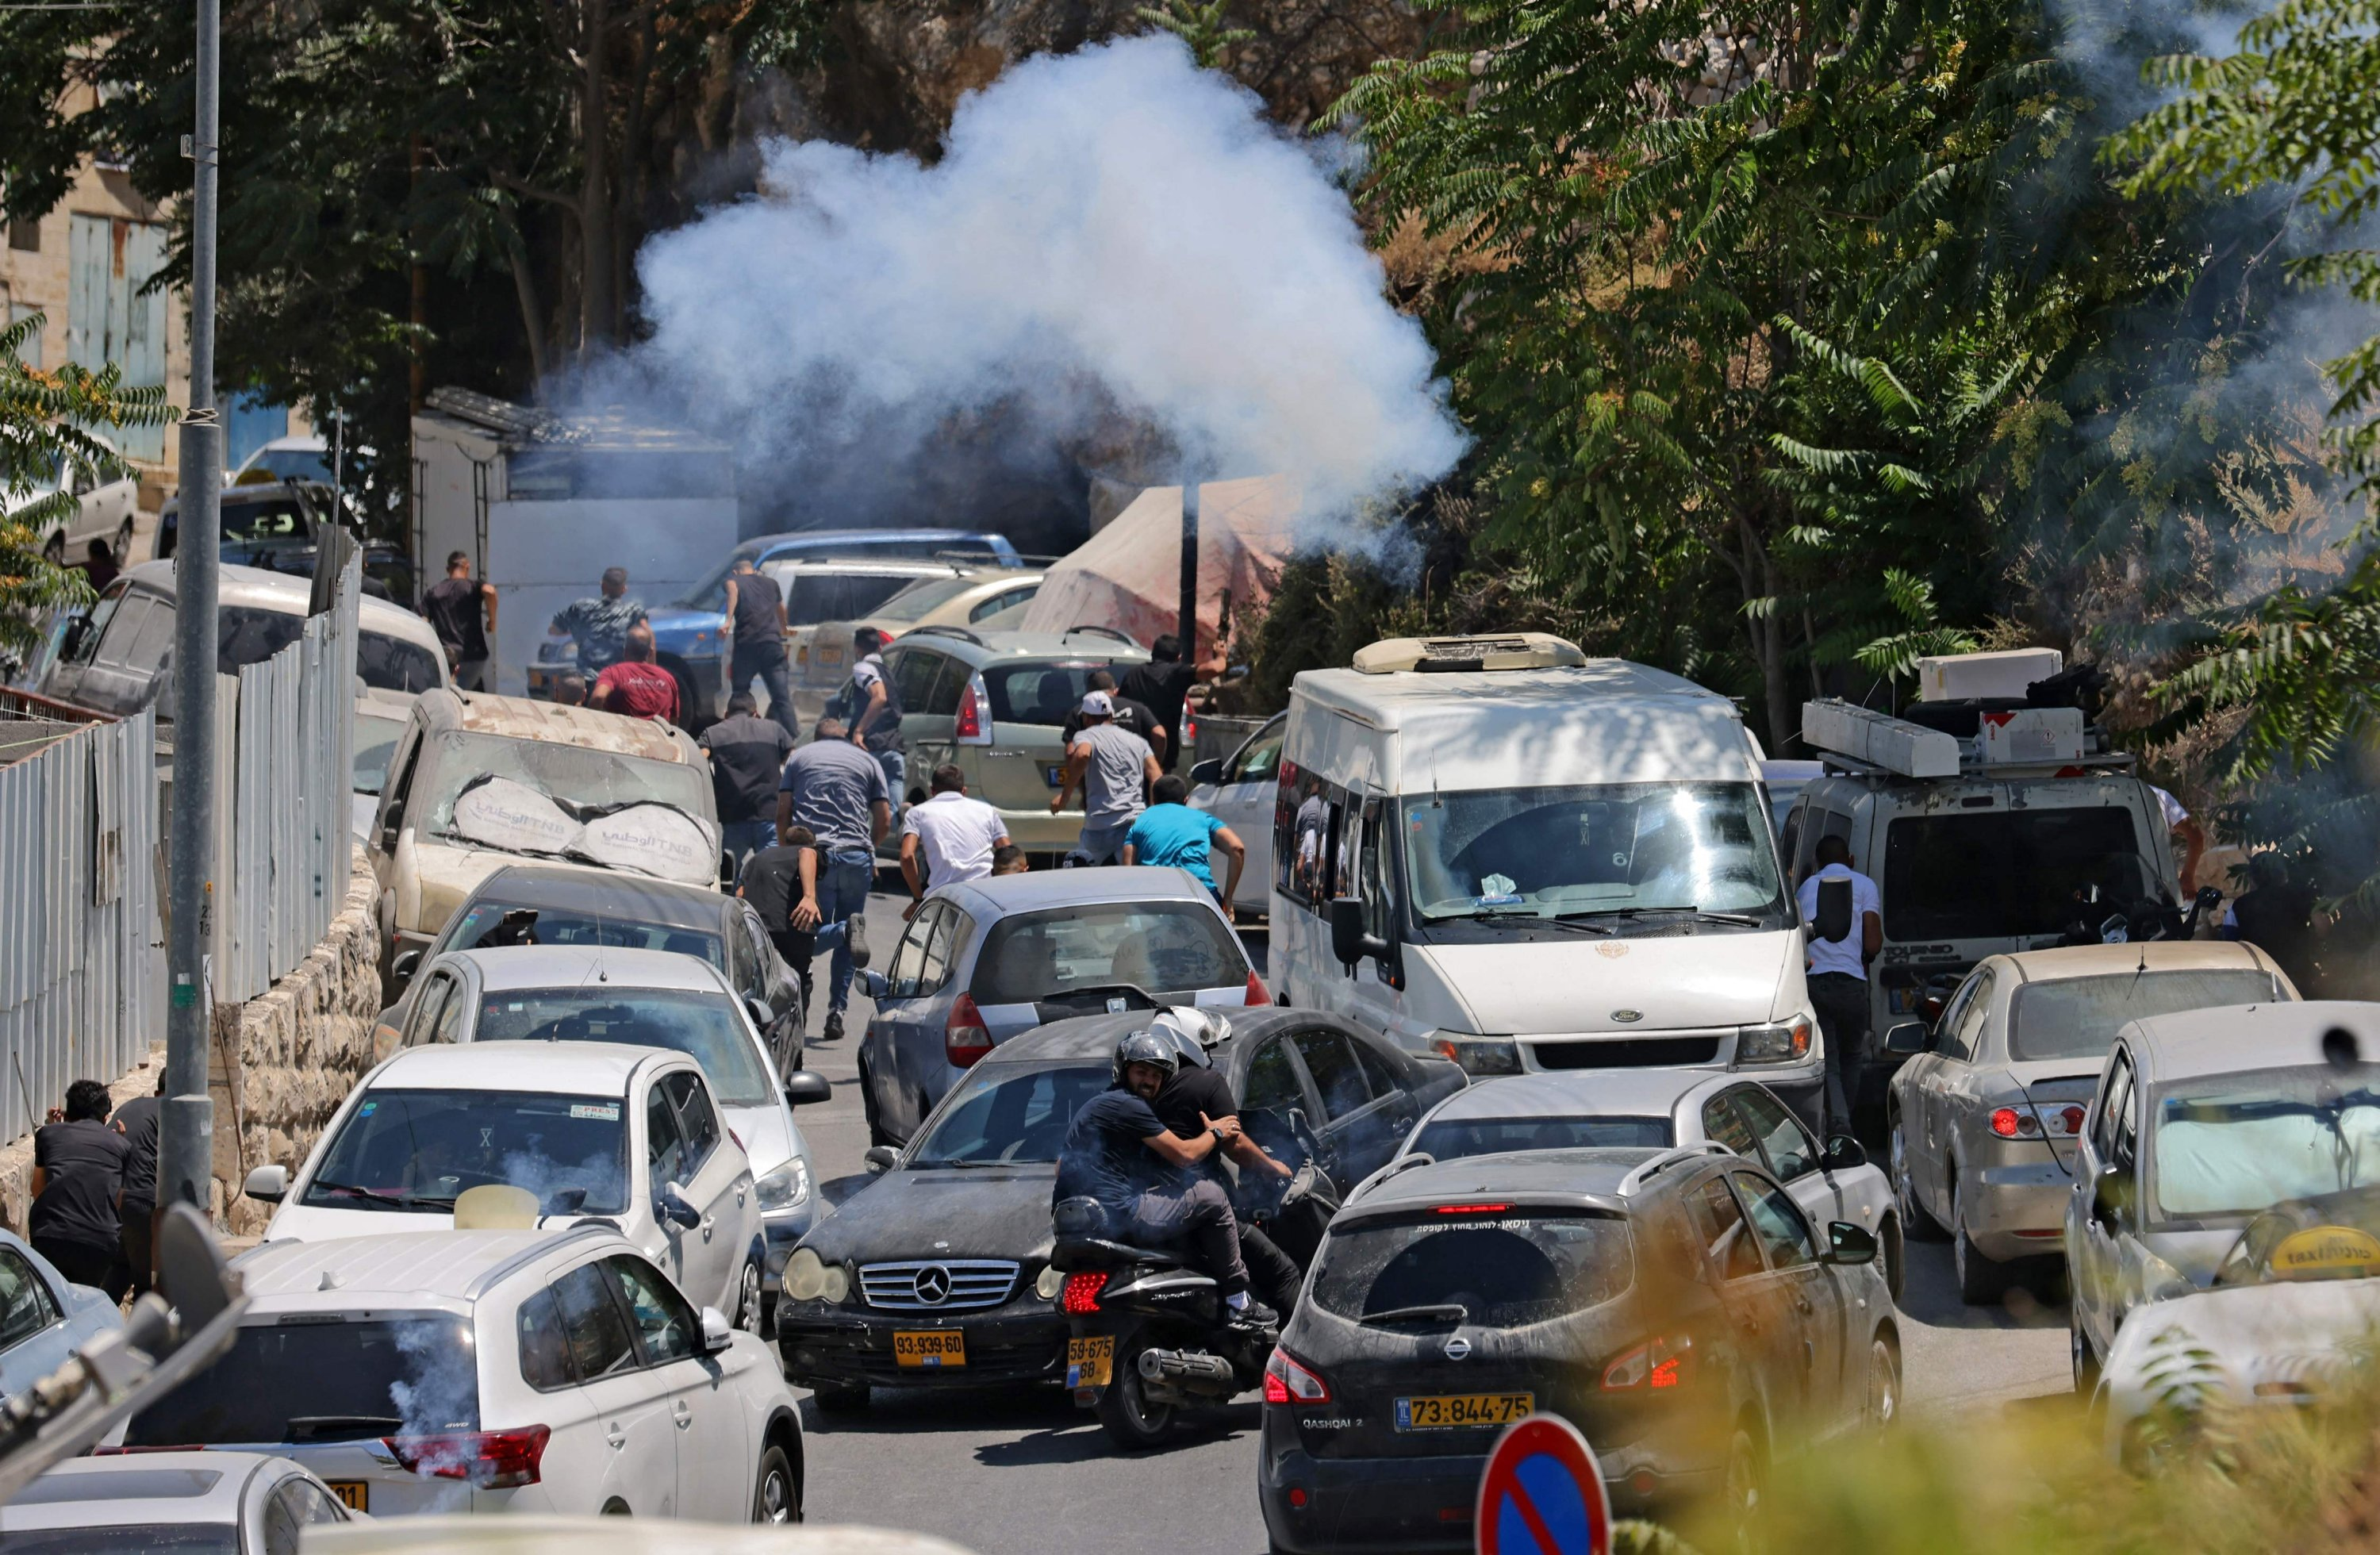 Smoke billows during clashes between Israeli security and Palestinians following Friday prayers in Silwan, East Jerusalem, July 2, 2021. (AFP Photo)